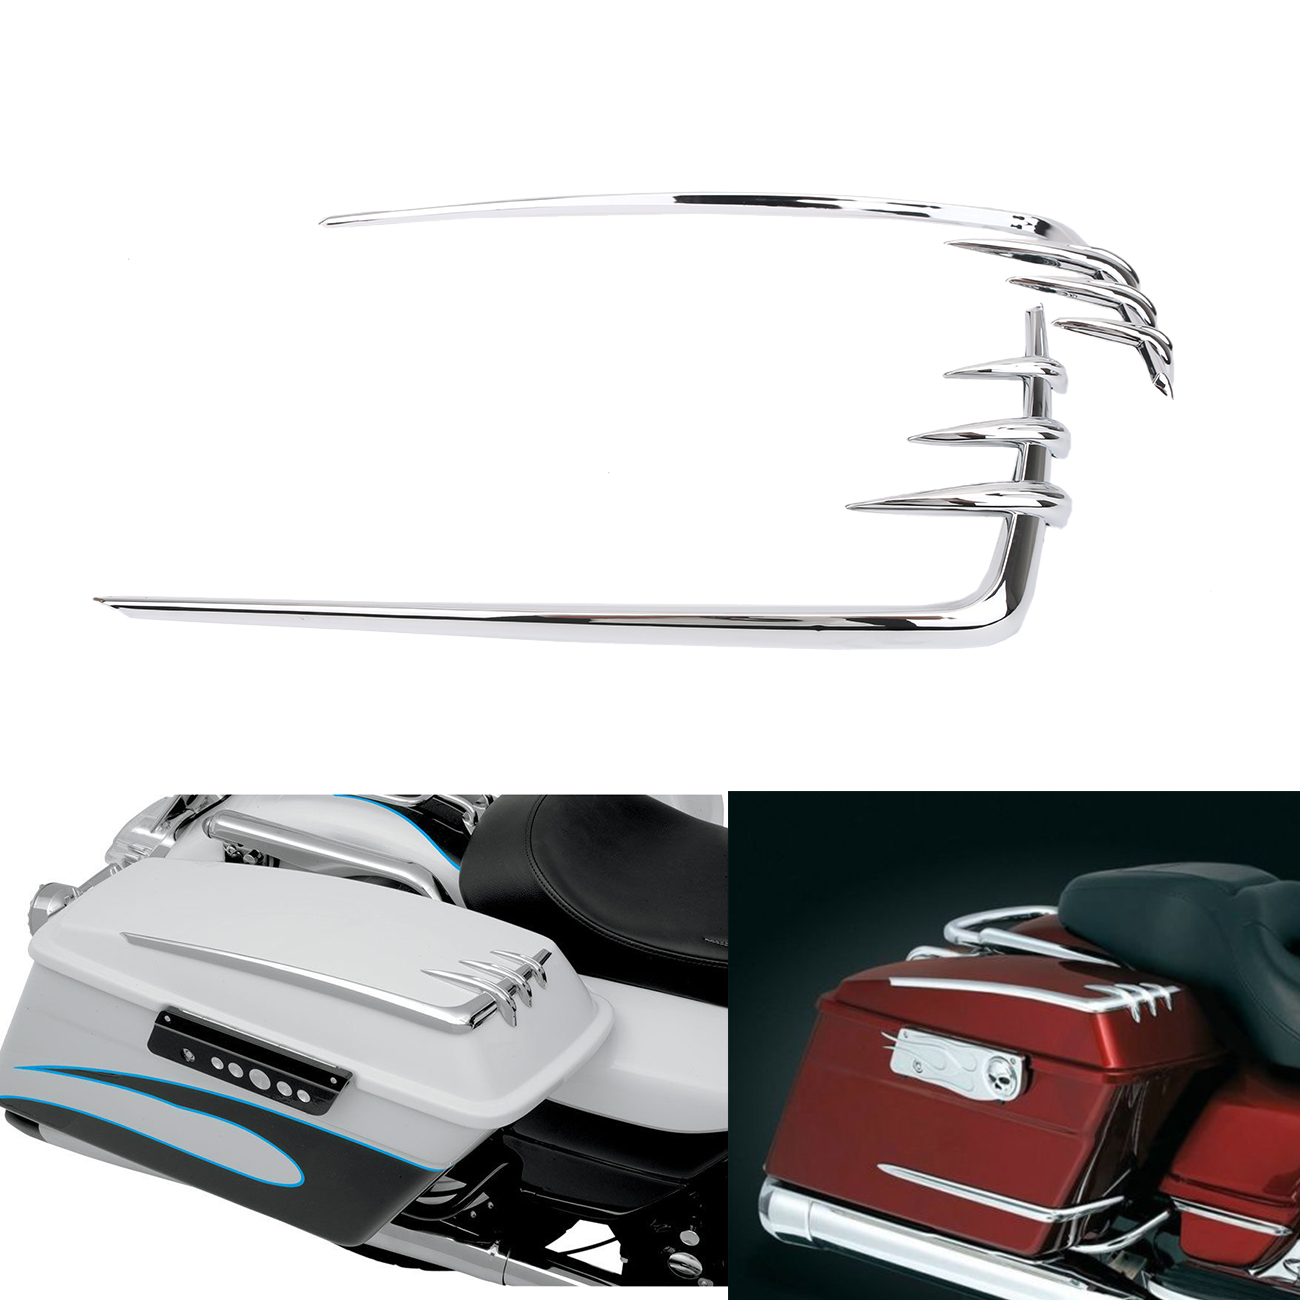 1 Paar Chrome Zadel Doos Saddlebag Deksel Accenten Cover Harley Hd Road King Electra/tri Glide Motorcycle Bike Accessoires Snelle Warmteafvoer